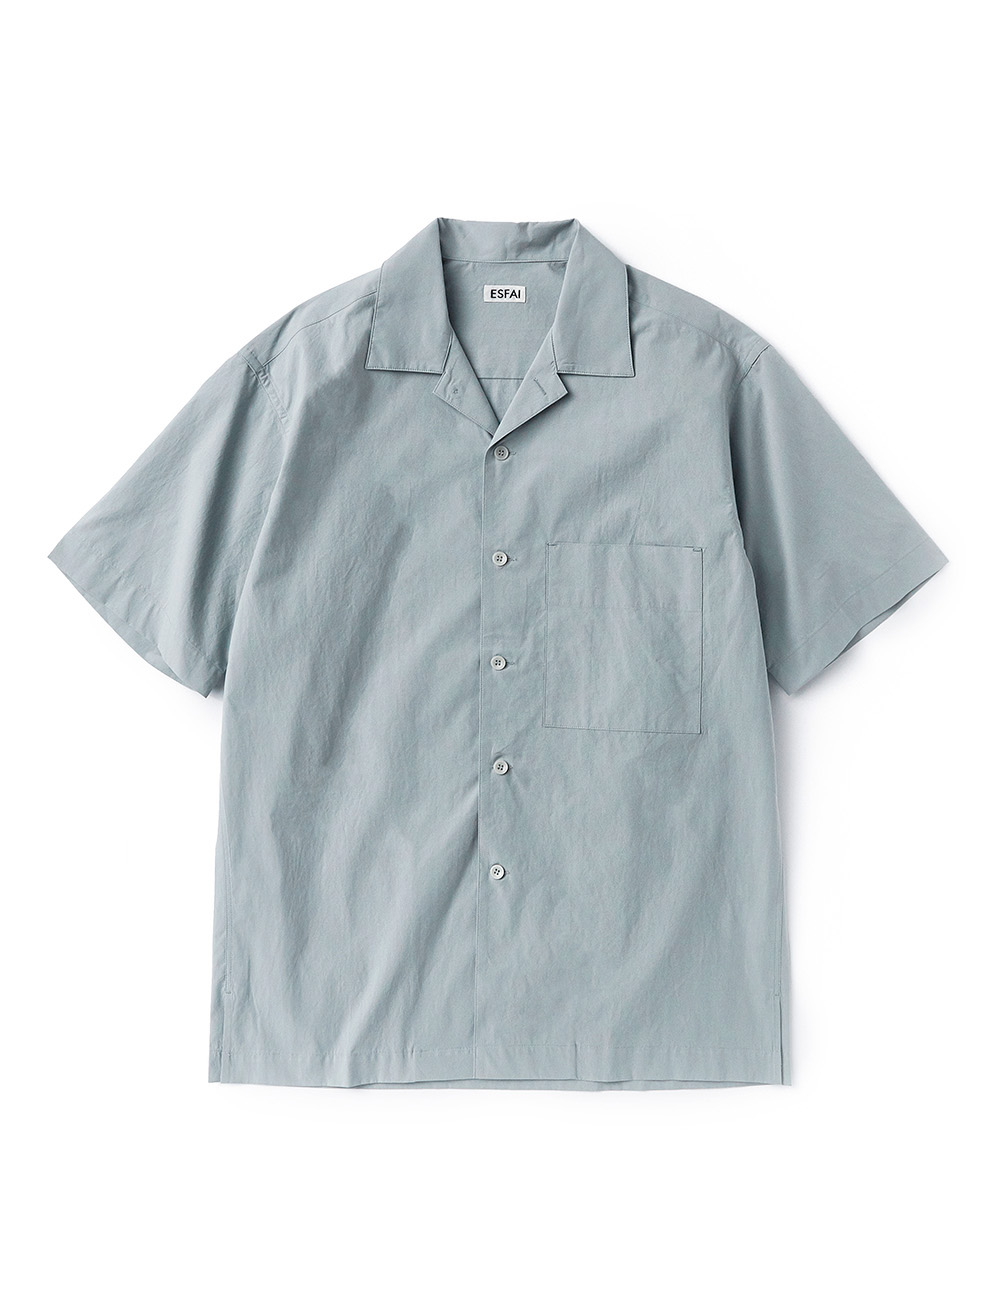 [ESFAI] sue02 summer standard shirts (Blue Gray)